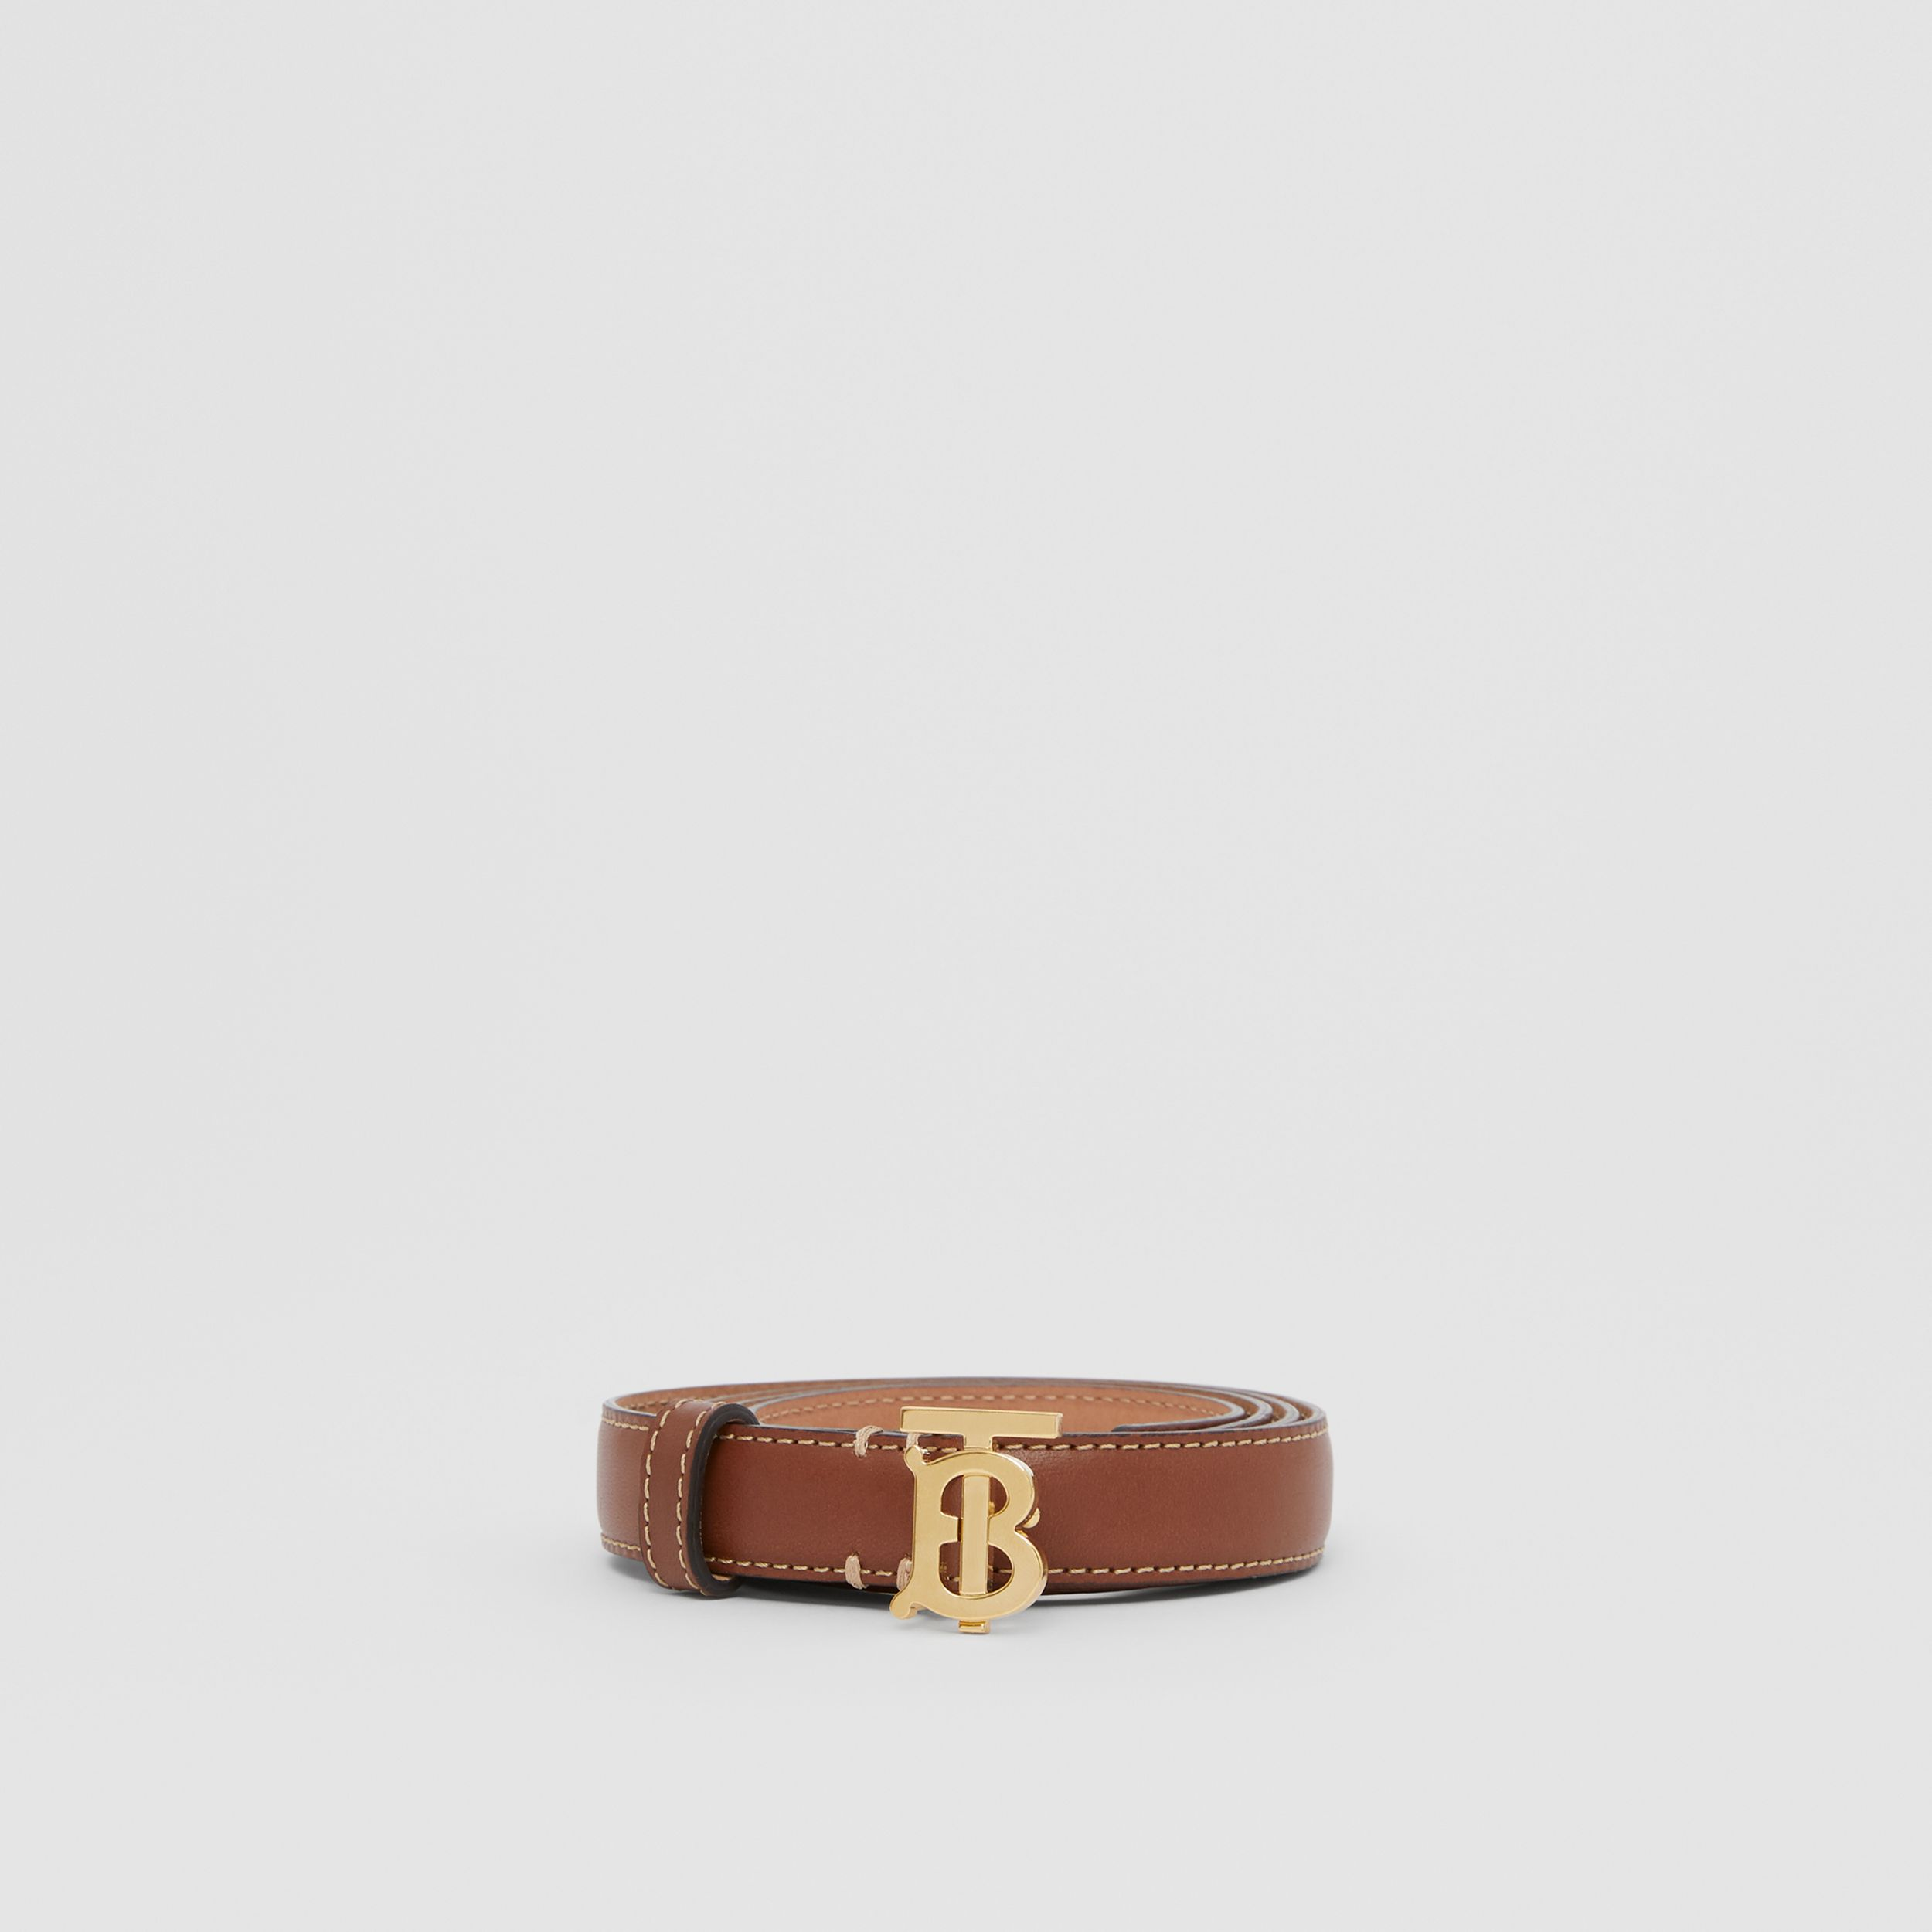 Monogram Motif Topstitched Leather Belt in Tan/light Gold - Women | Burberry - 3